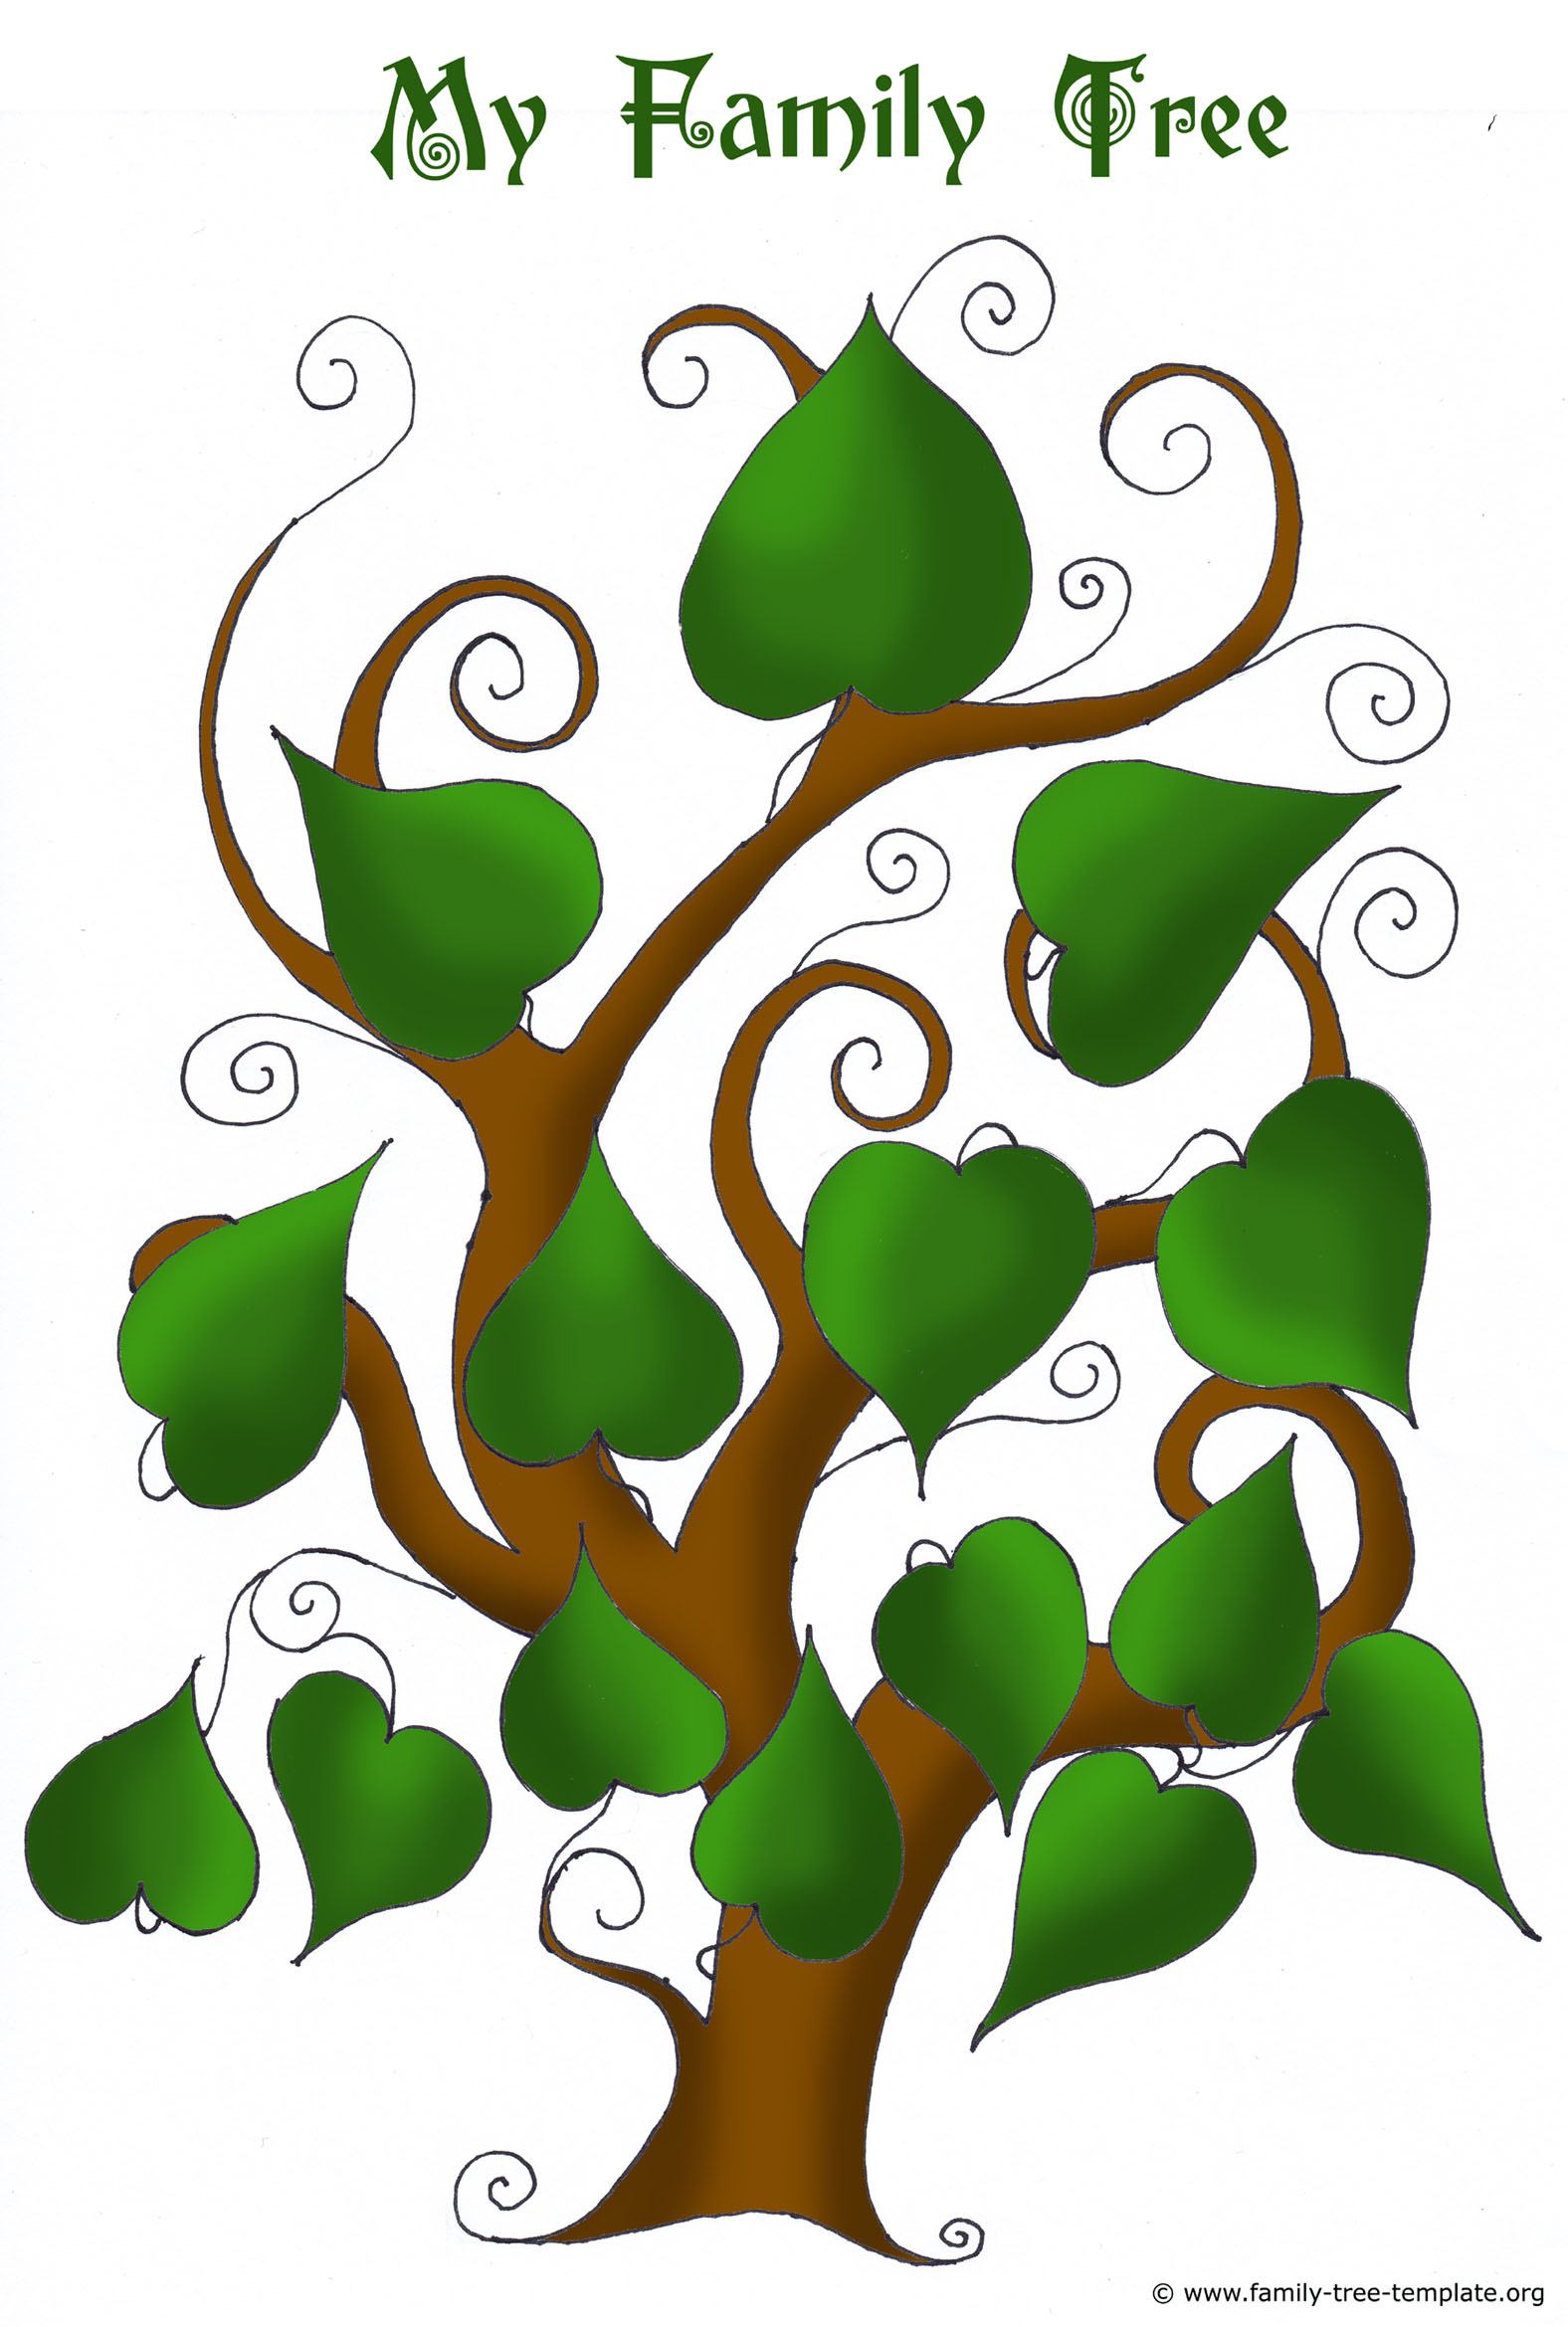 4 generation family tree with heart shaped leaves.